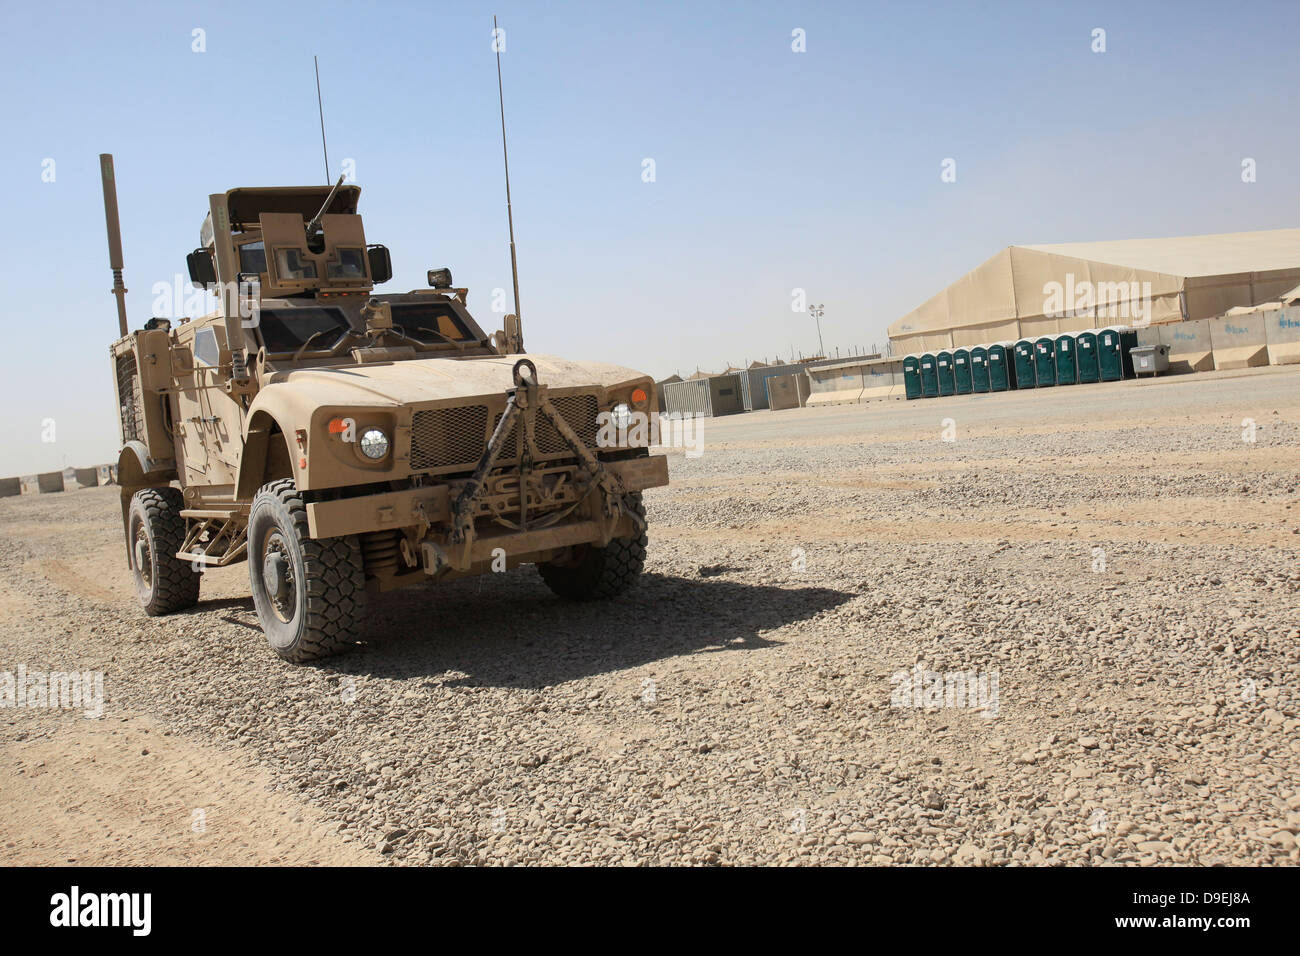 An Oshkosh M-ATV sits parked at Camp Leatherneck, Afghanistan. - Stock Image